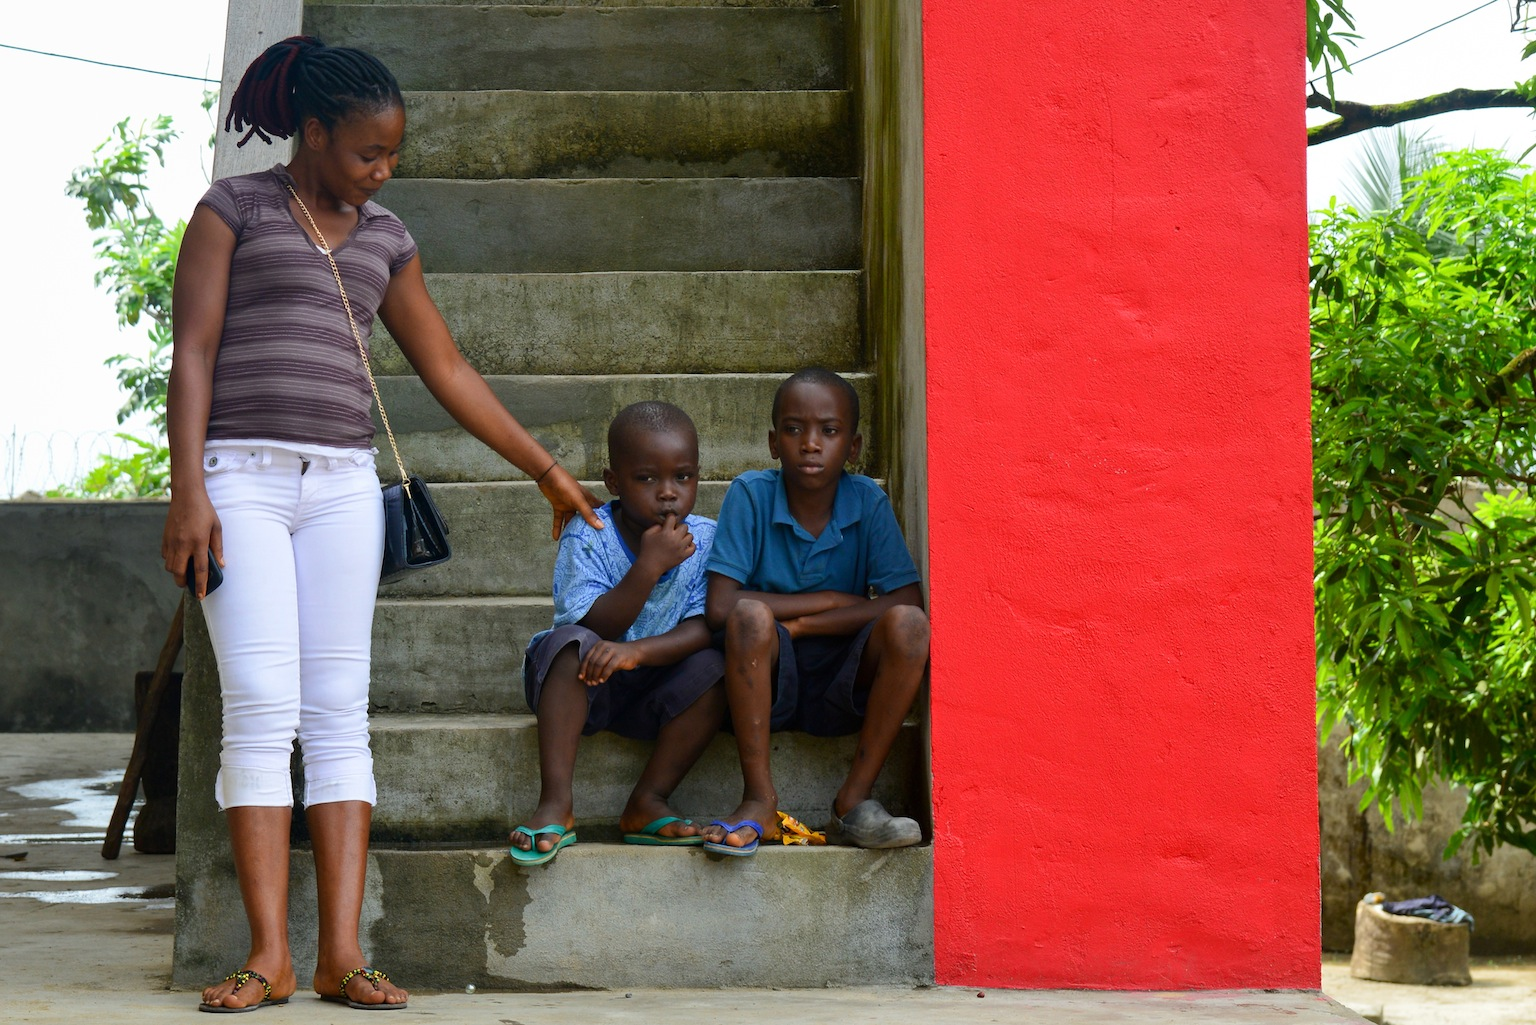 Caretaker Helen Morris consoles two boys who must remain in quarantine at an interim care center for children exposed to the Ebola virus, in Monrovia, Liberia.